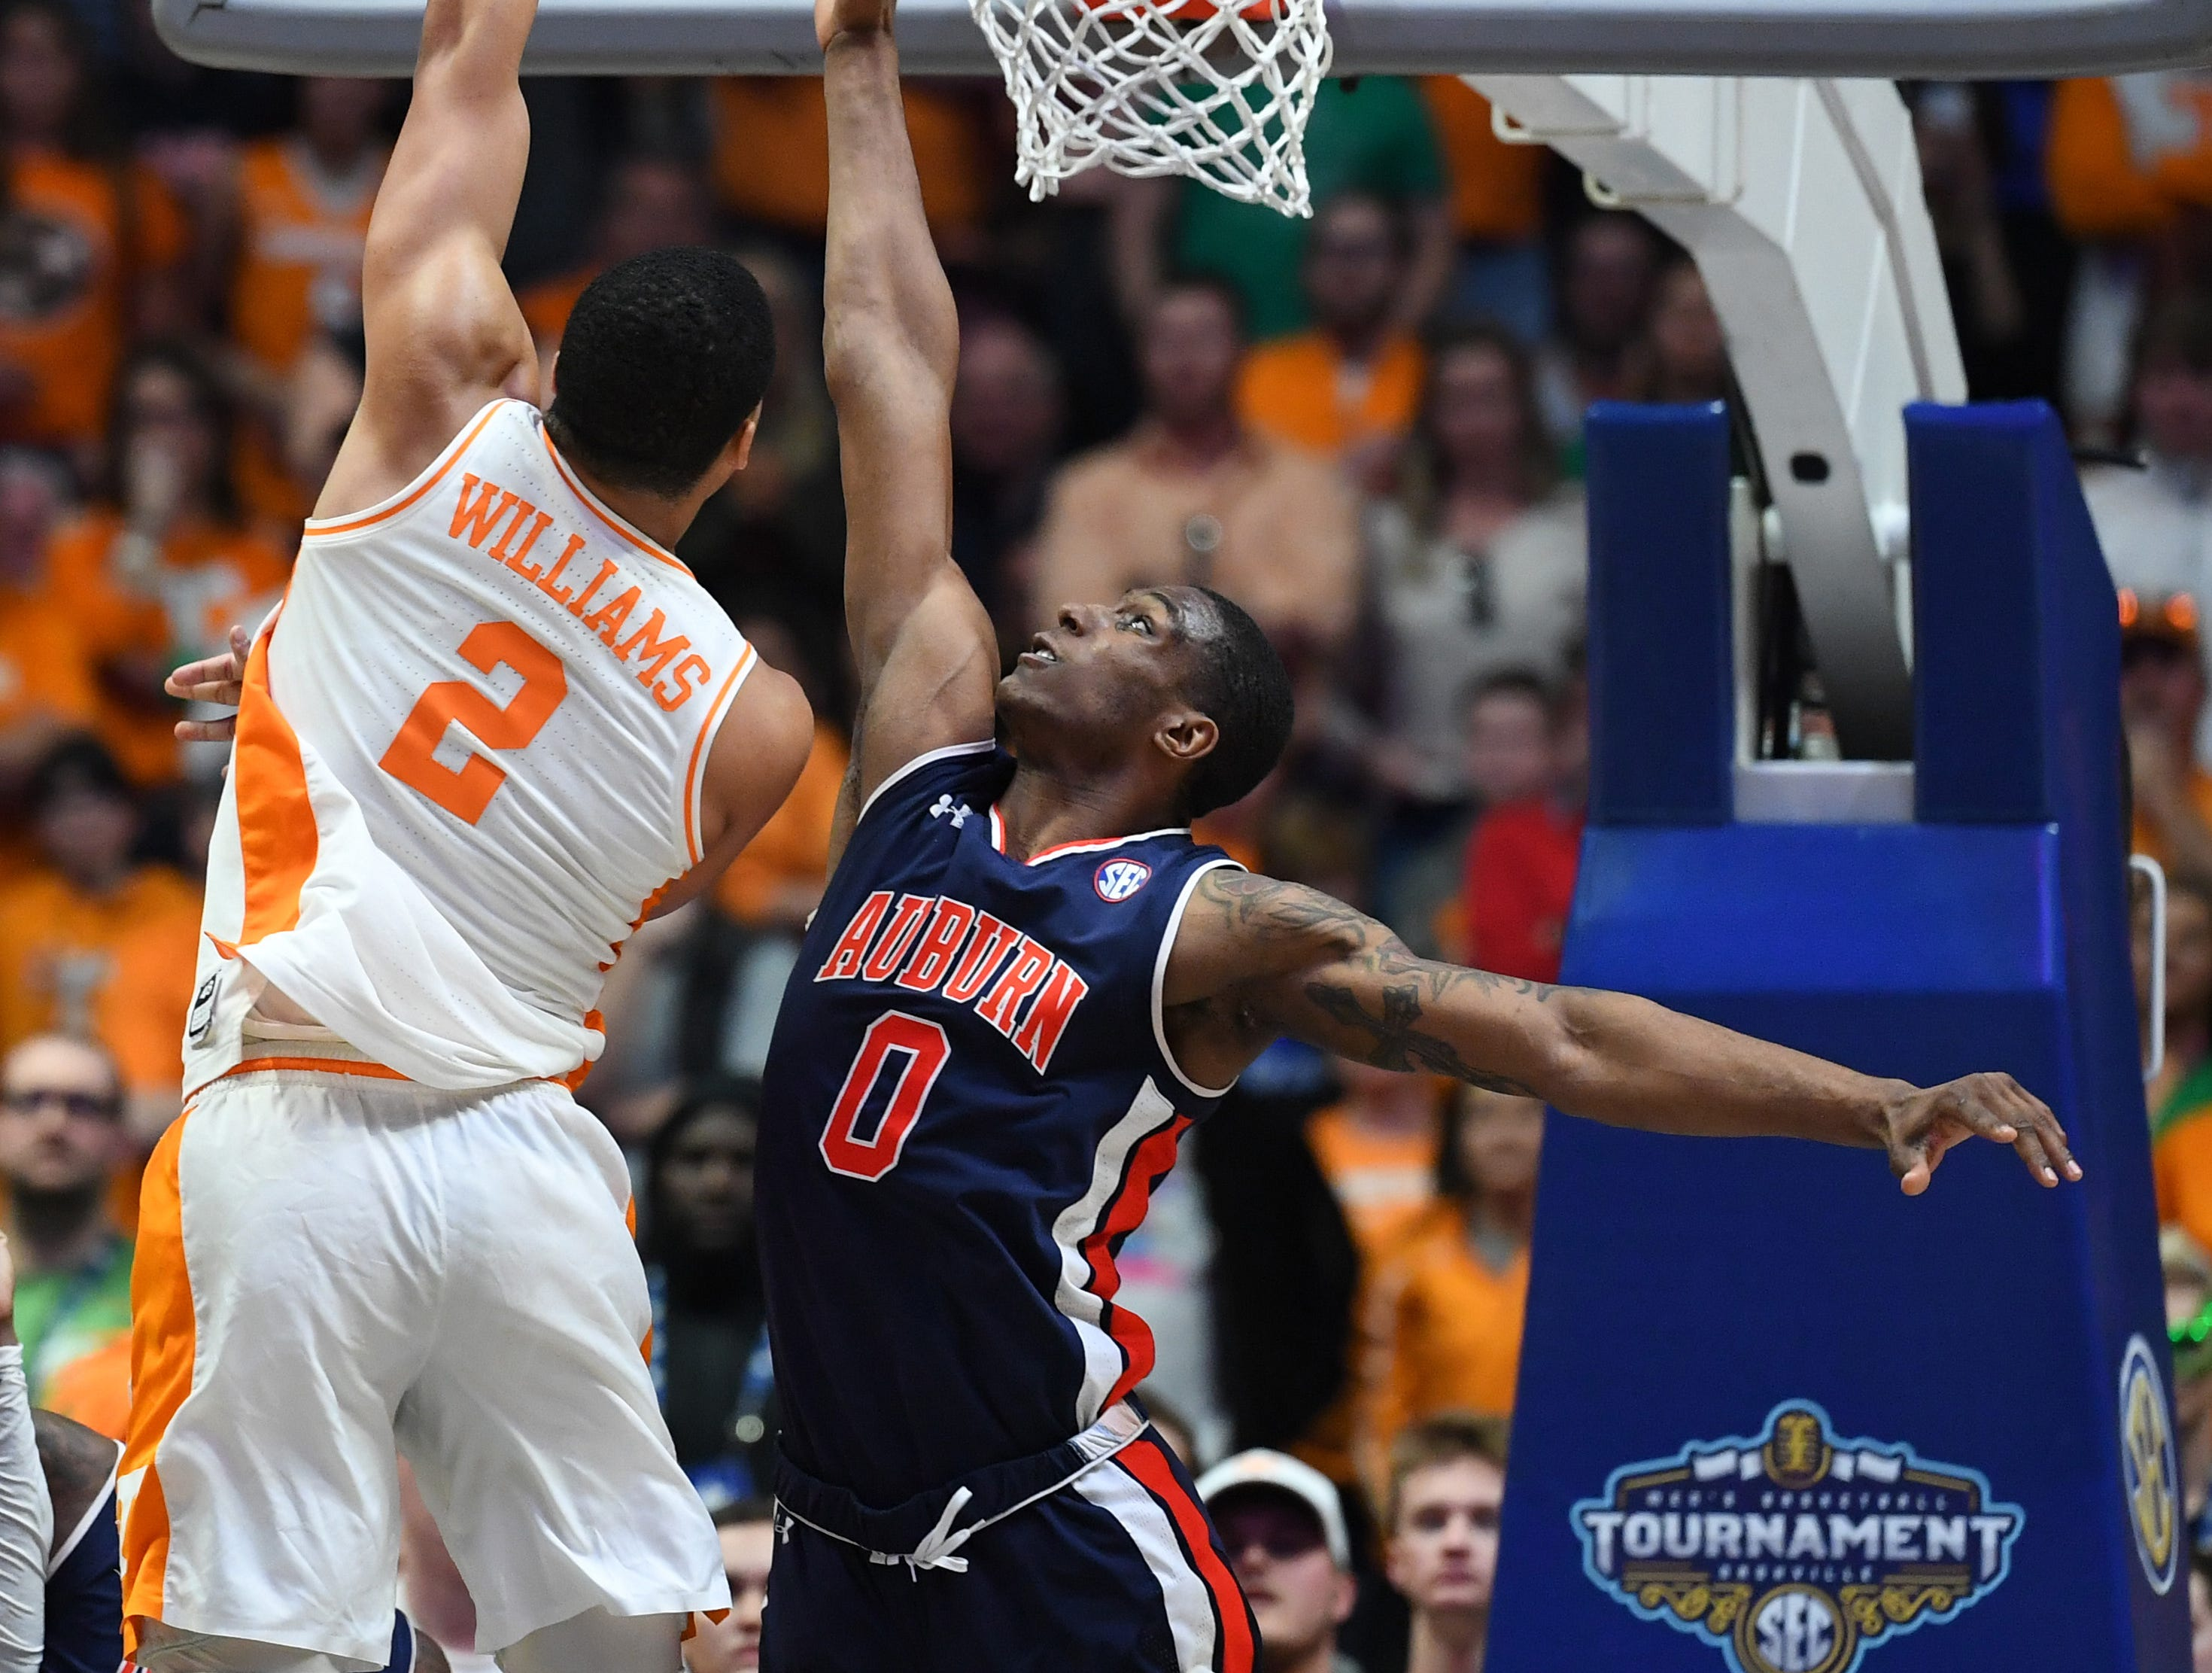 Mar 17, 2019; Nashville, TN, USA; Tennessee Volunteers forward Grant Williams (2) shoots over Auburn Tigers forward Horace Spencer (0) during the second half in the SEC conference tournament championship game at Bridgestone Arena. Mandatory Credit: Christopher Hanewinckel-USA TODAY Sports